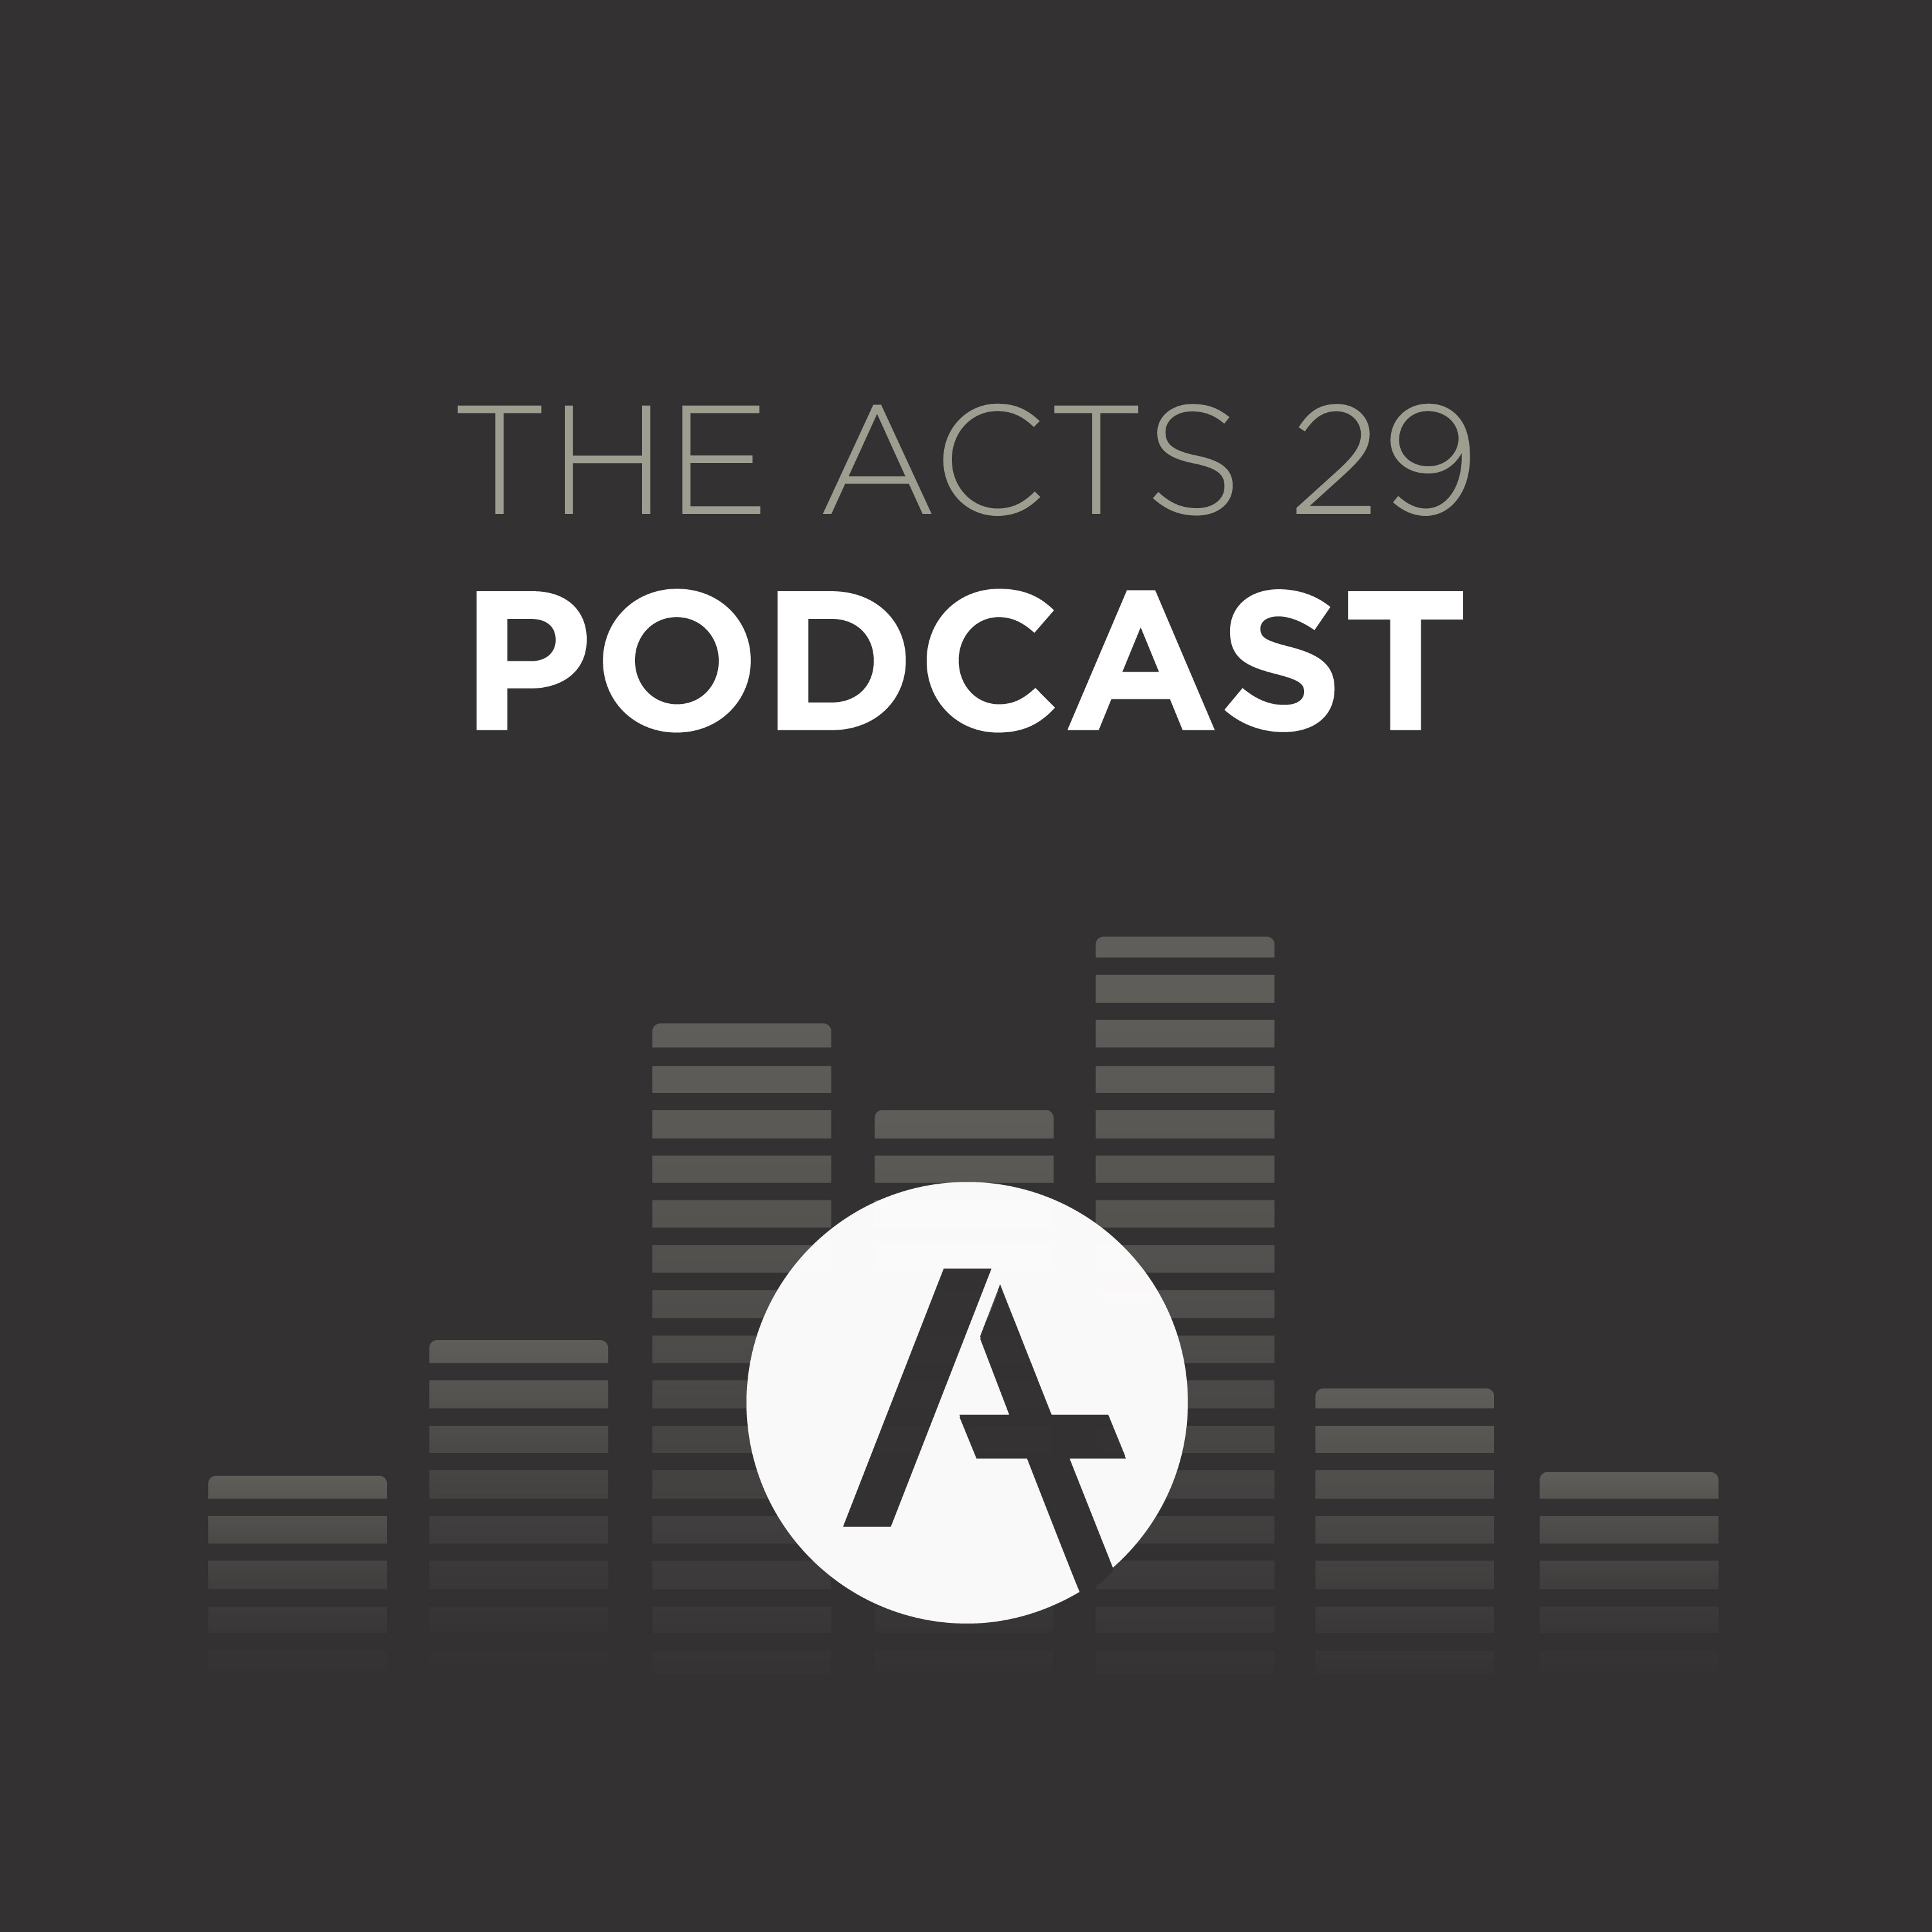 Acts 29 Podcast